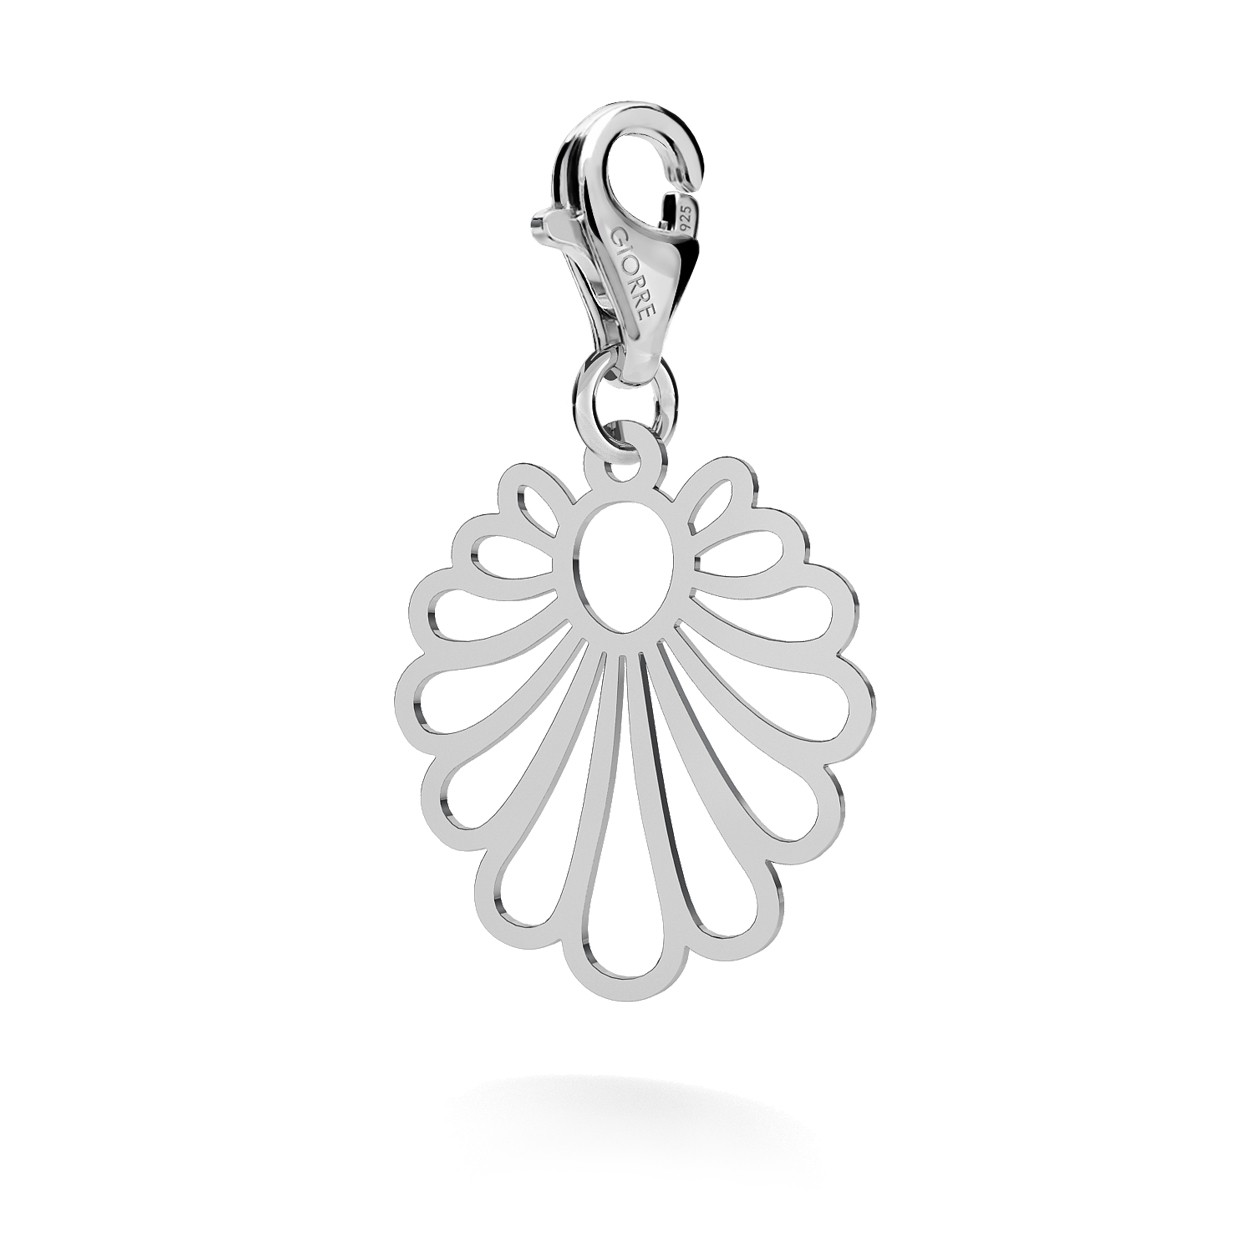 CHARM 62, ROSSETE DROP, SILVER 925,  RHODIUM OR GOLD PLATED